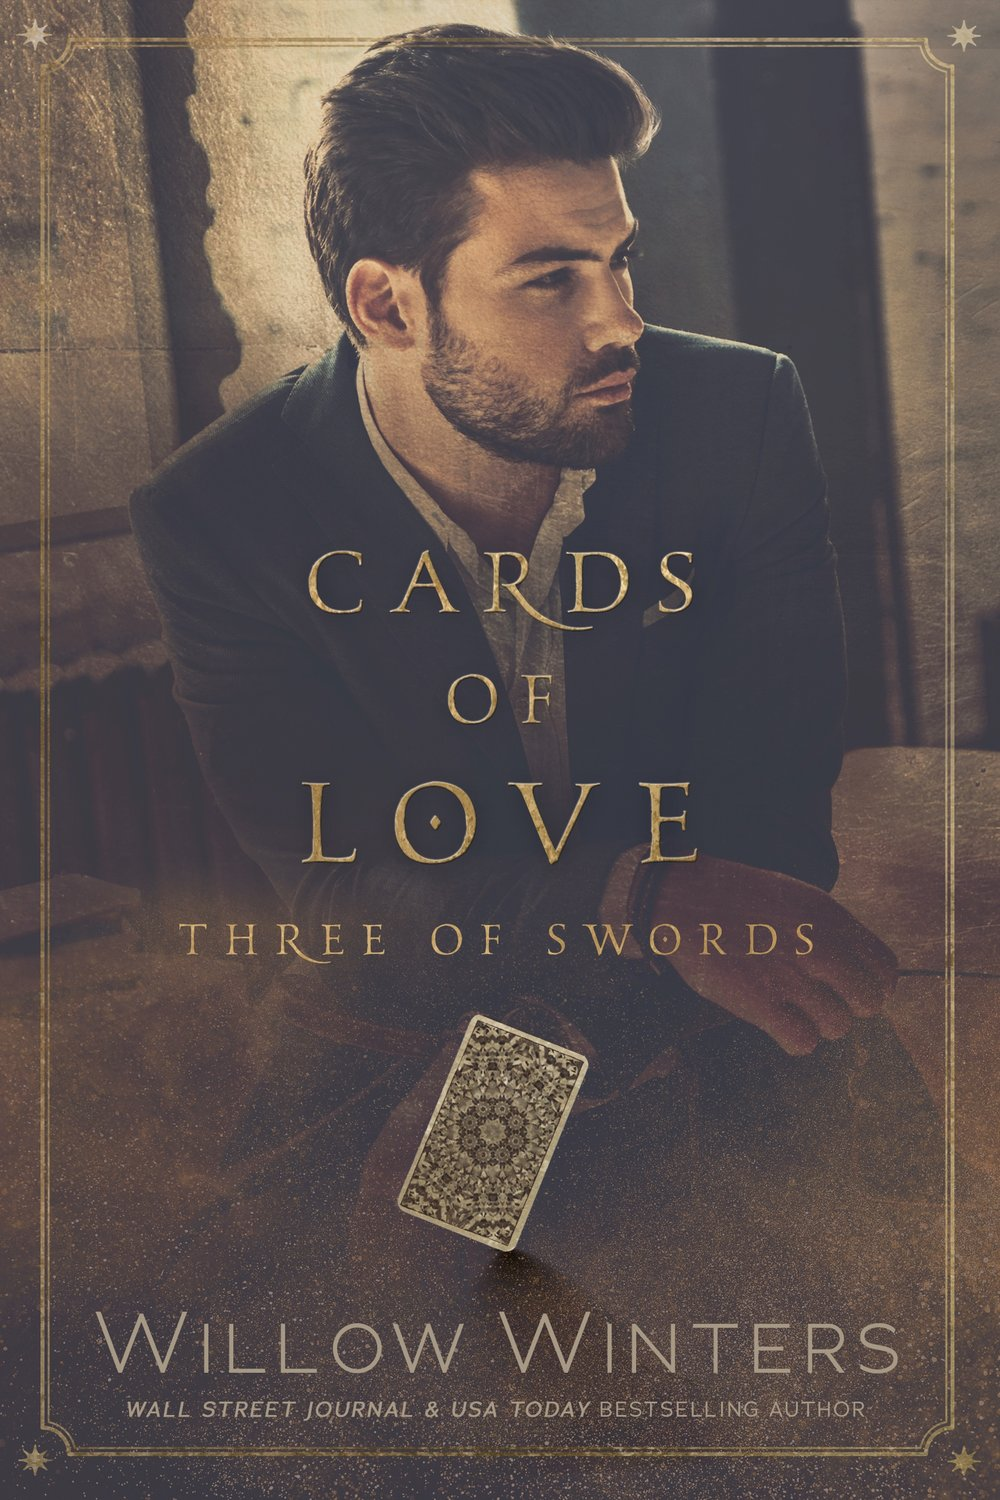 Cards-of-Love-Three-of-Swords-Google.jpg